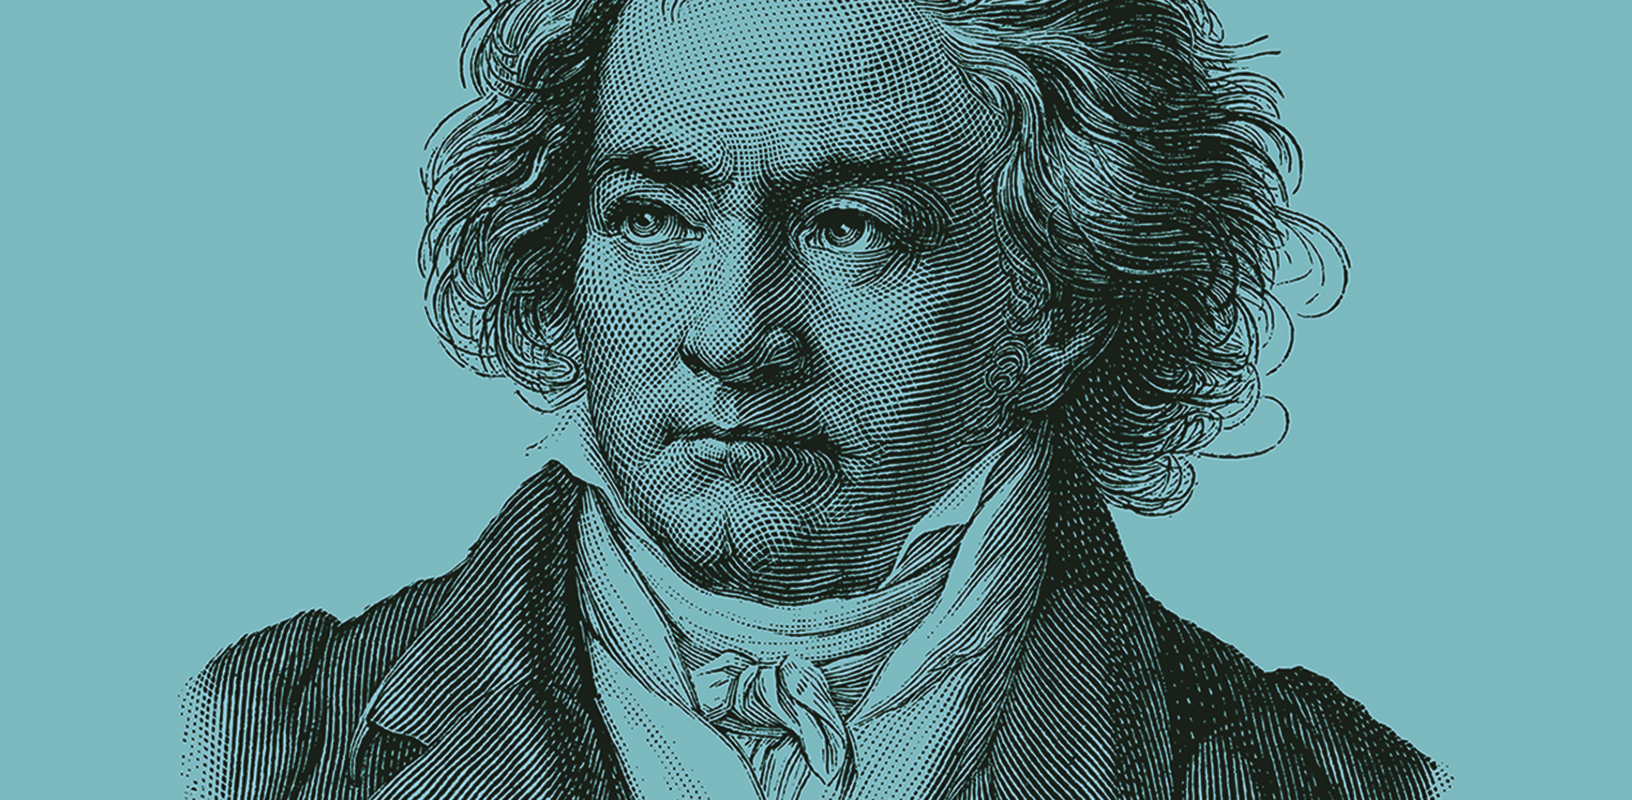 Beethoven 2020 anniversary: works inspired across the centuries